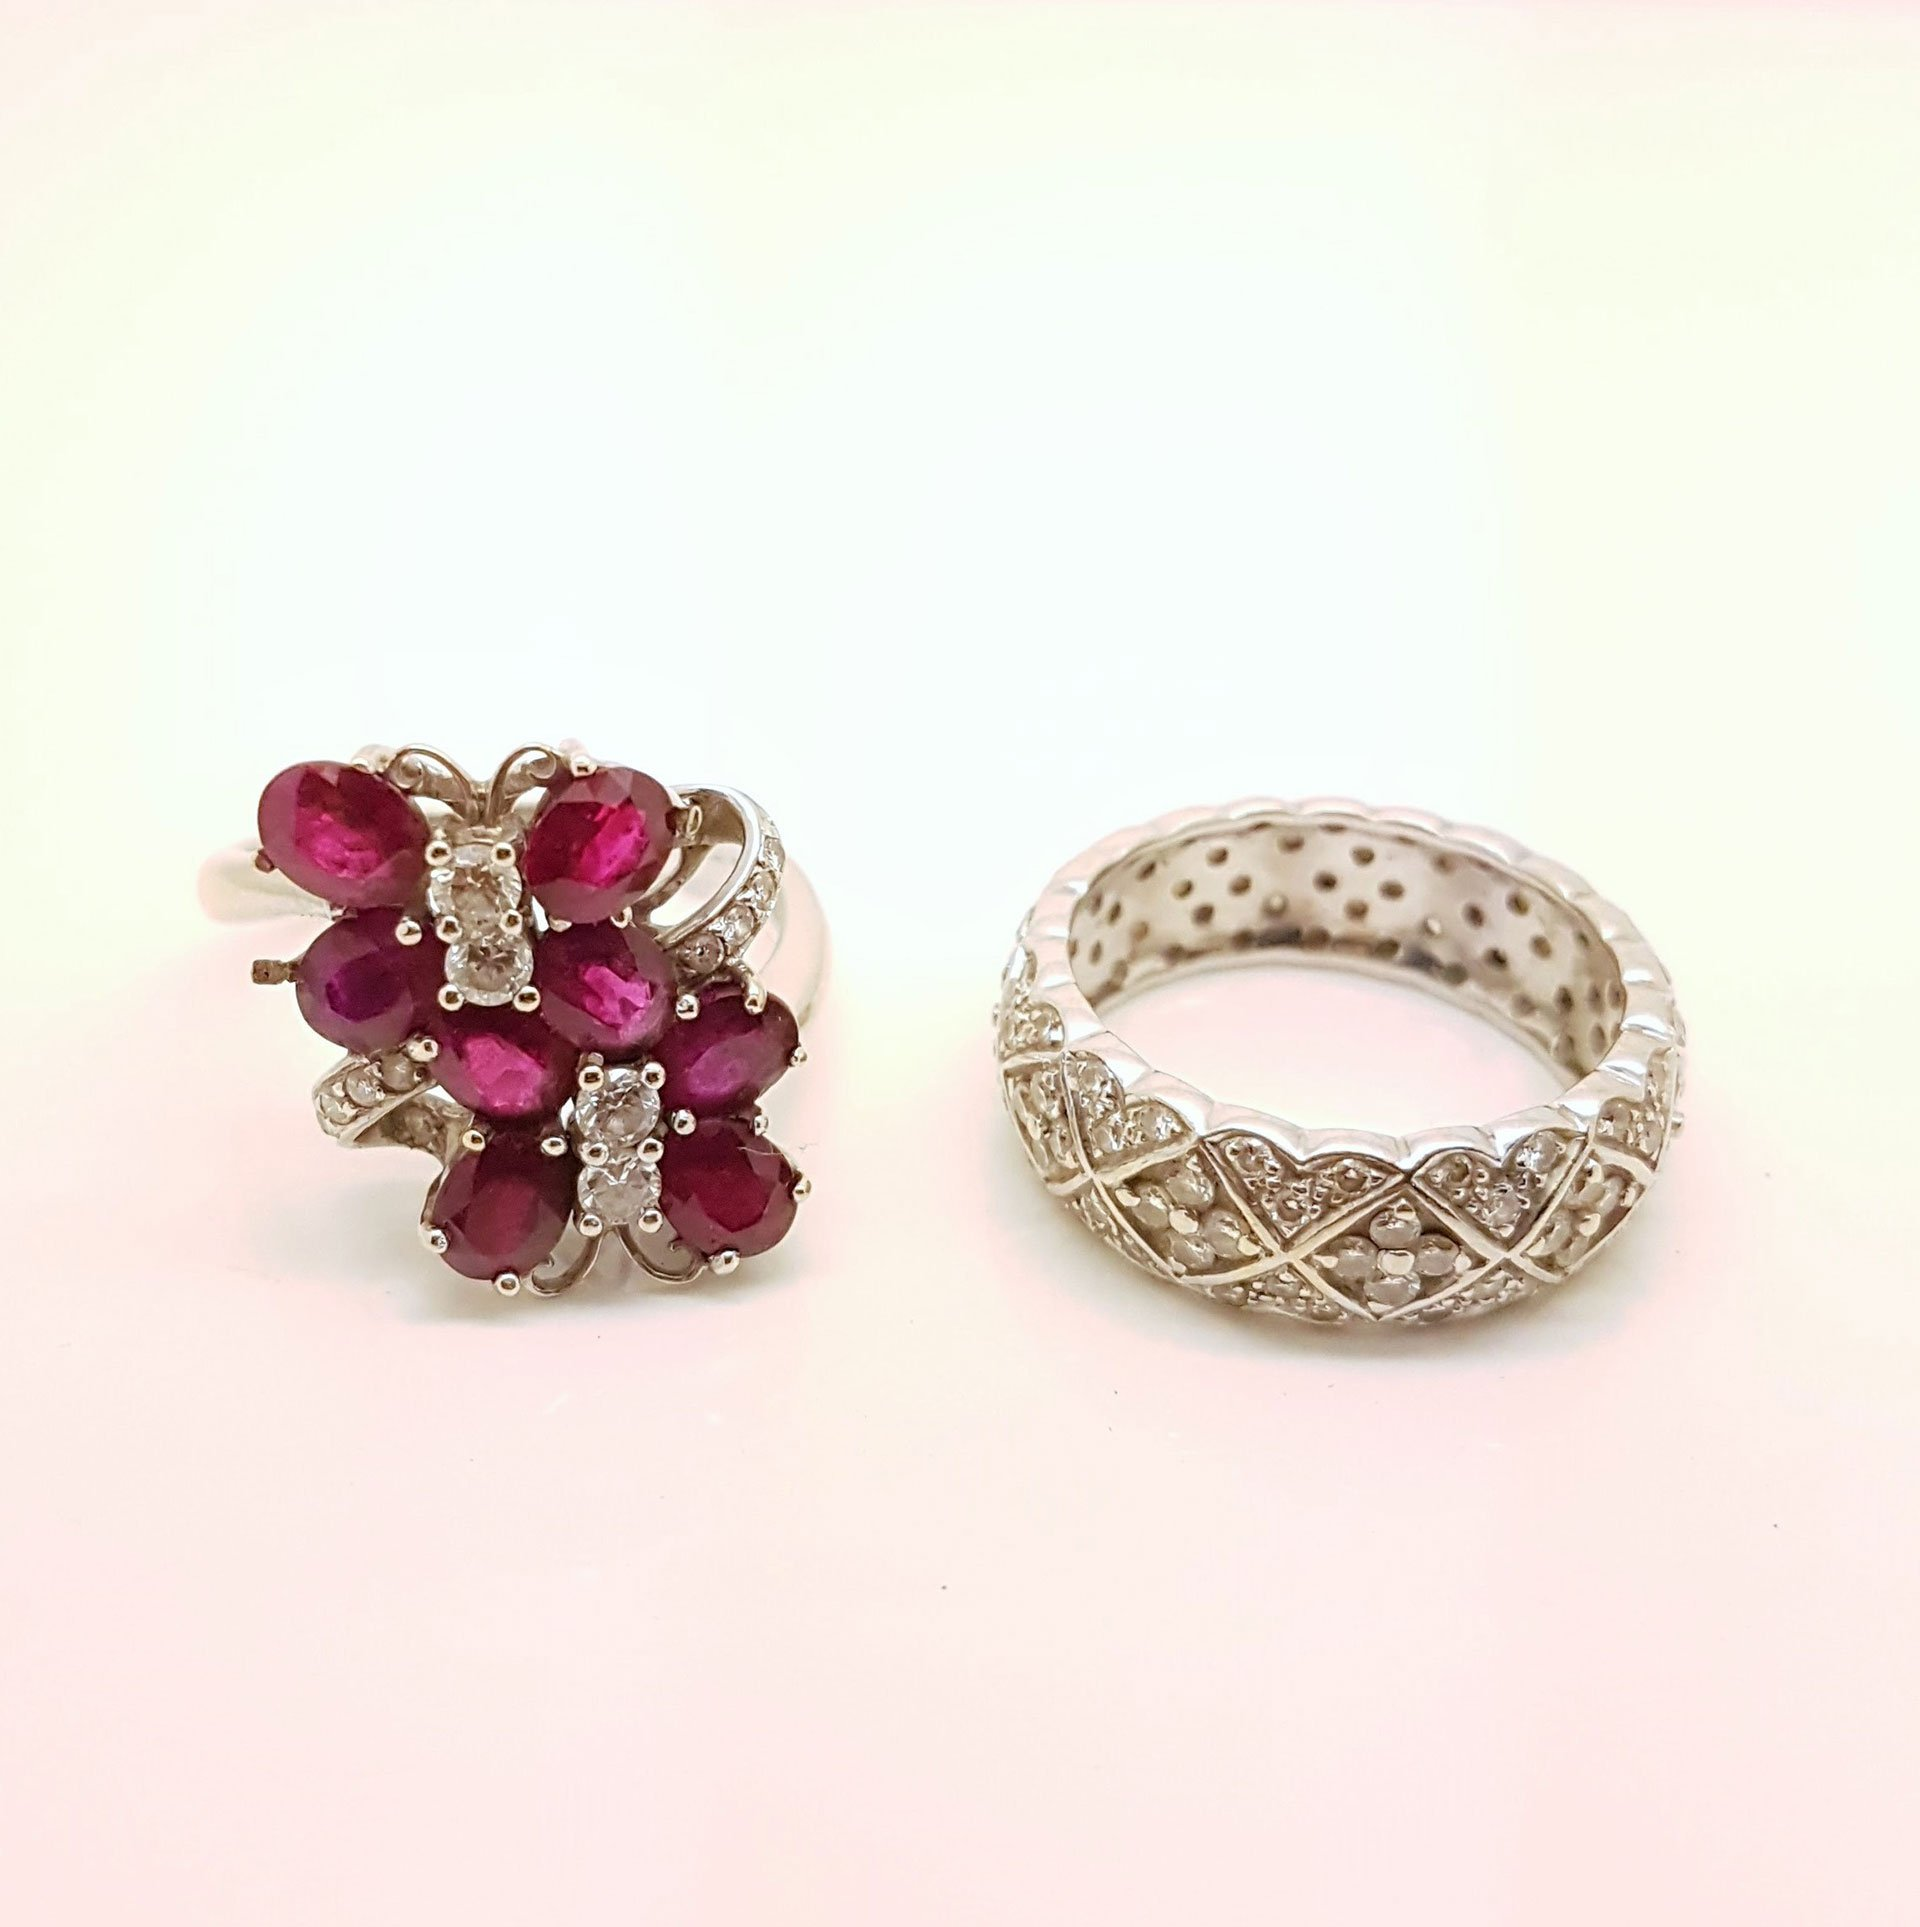 Ruby and diamond earrings with a ring